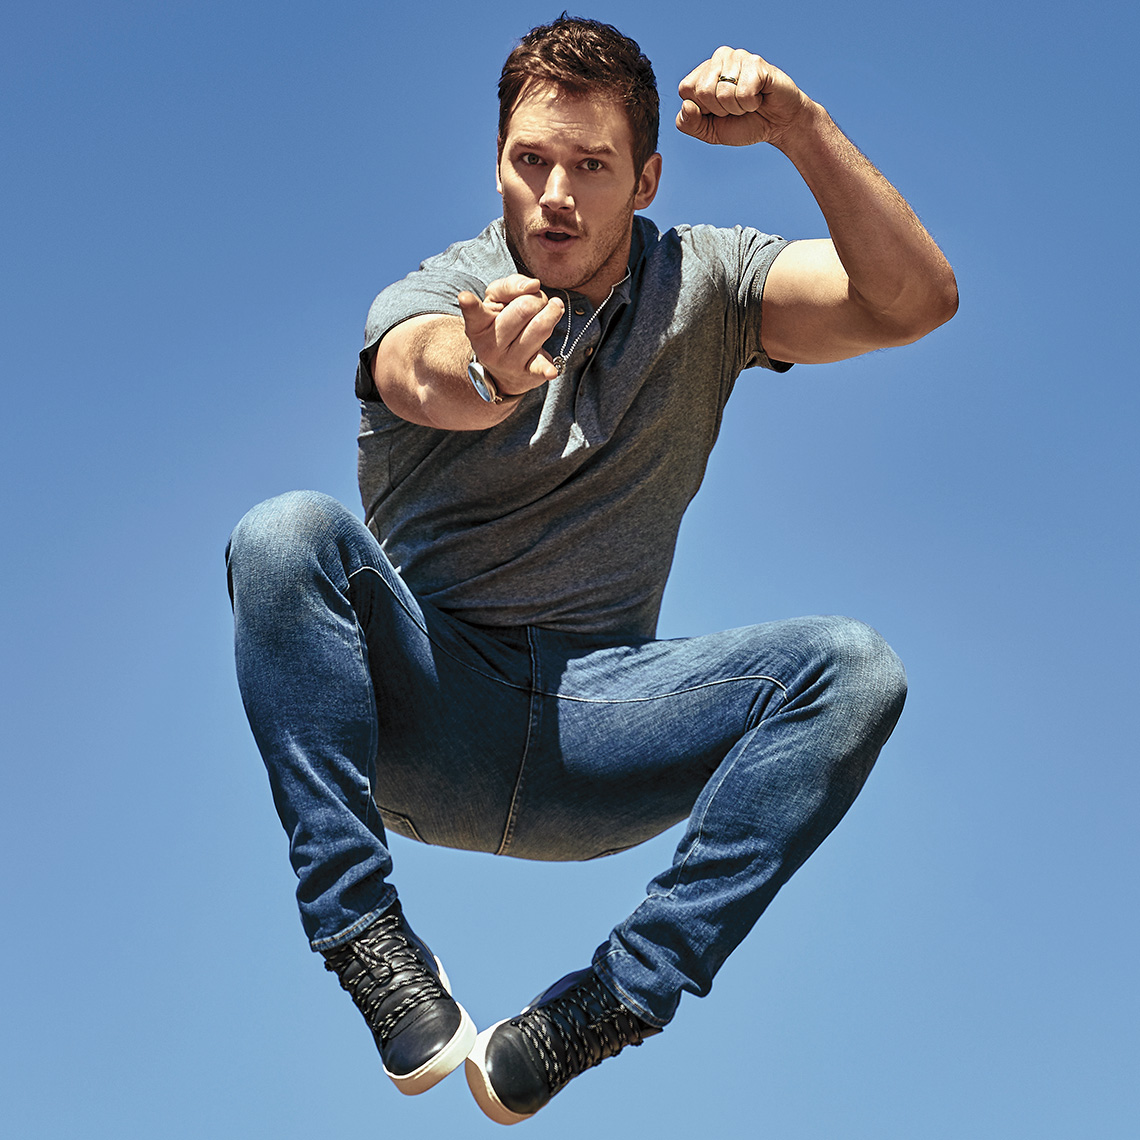 chris_pratt_mensfitness_0656-3